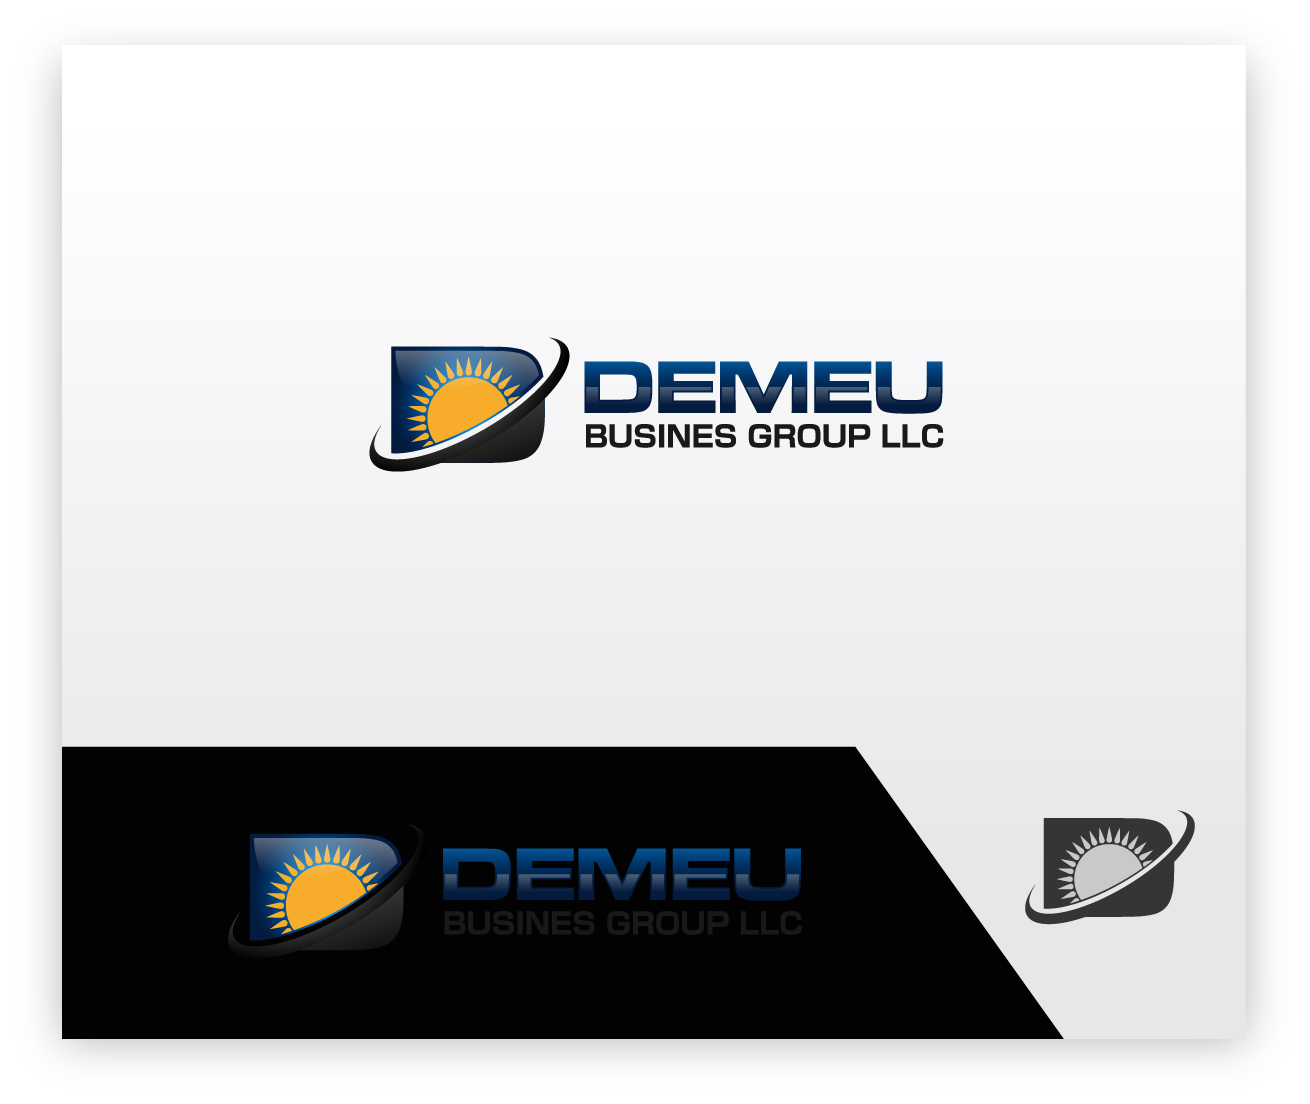 Logo Design by zoiDesign - Entry No. 114 in the Logo Design Contest Captivating Logo Design for DEMEU Business Group.